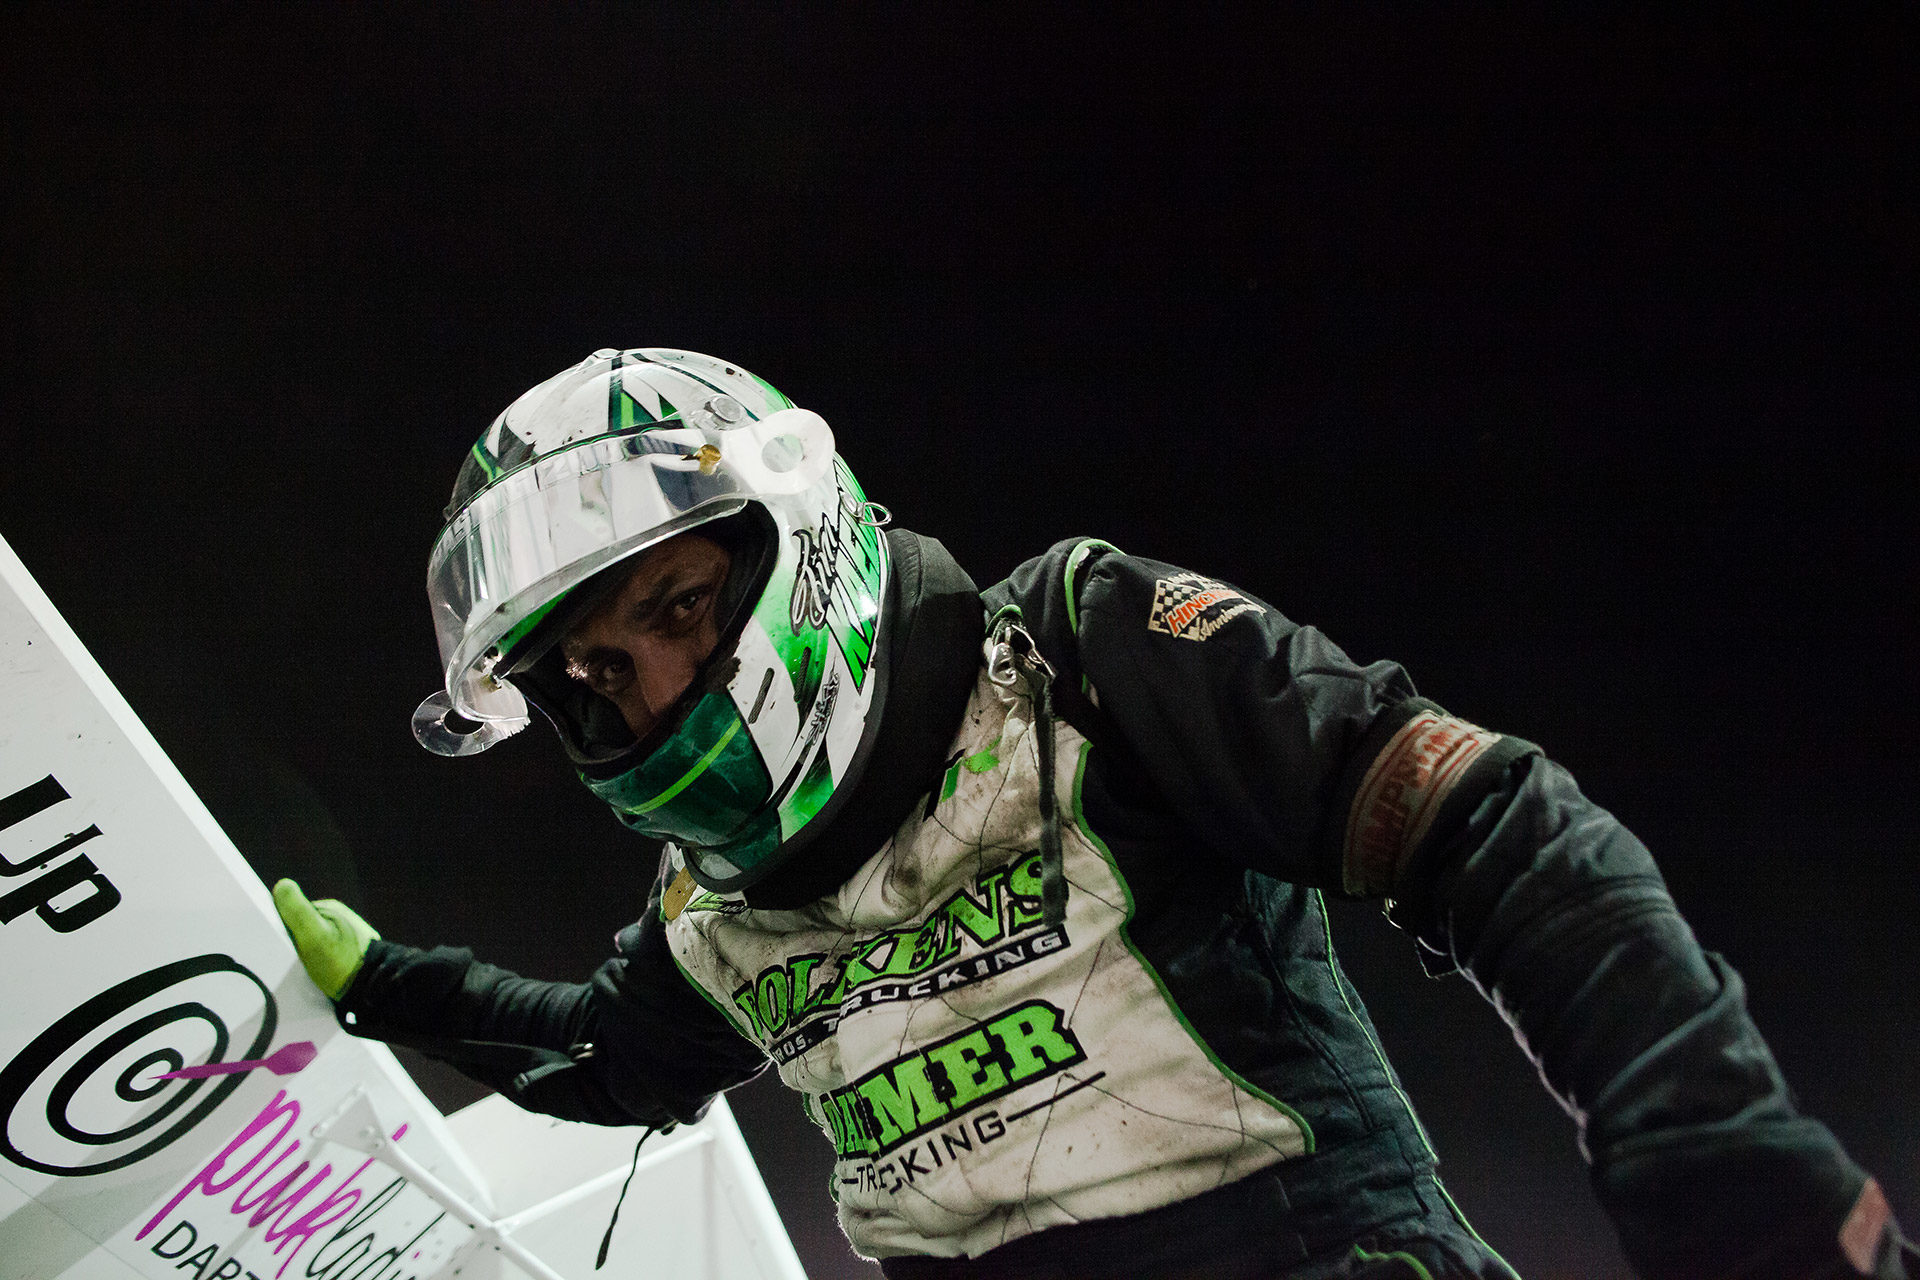 Tim Kaeding about to do the wing dance at The 2016 Knoxville Nationals